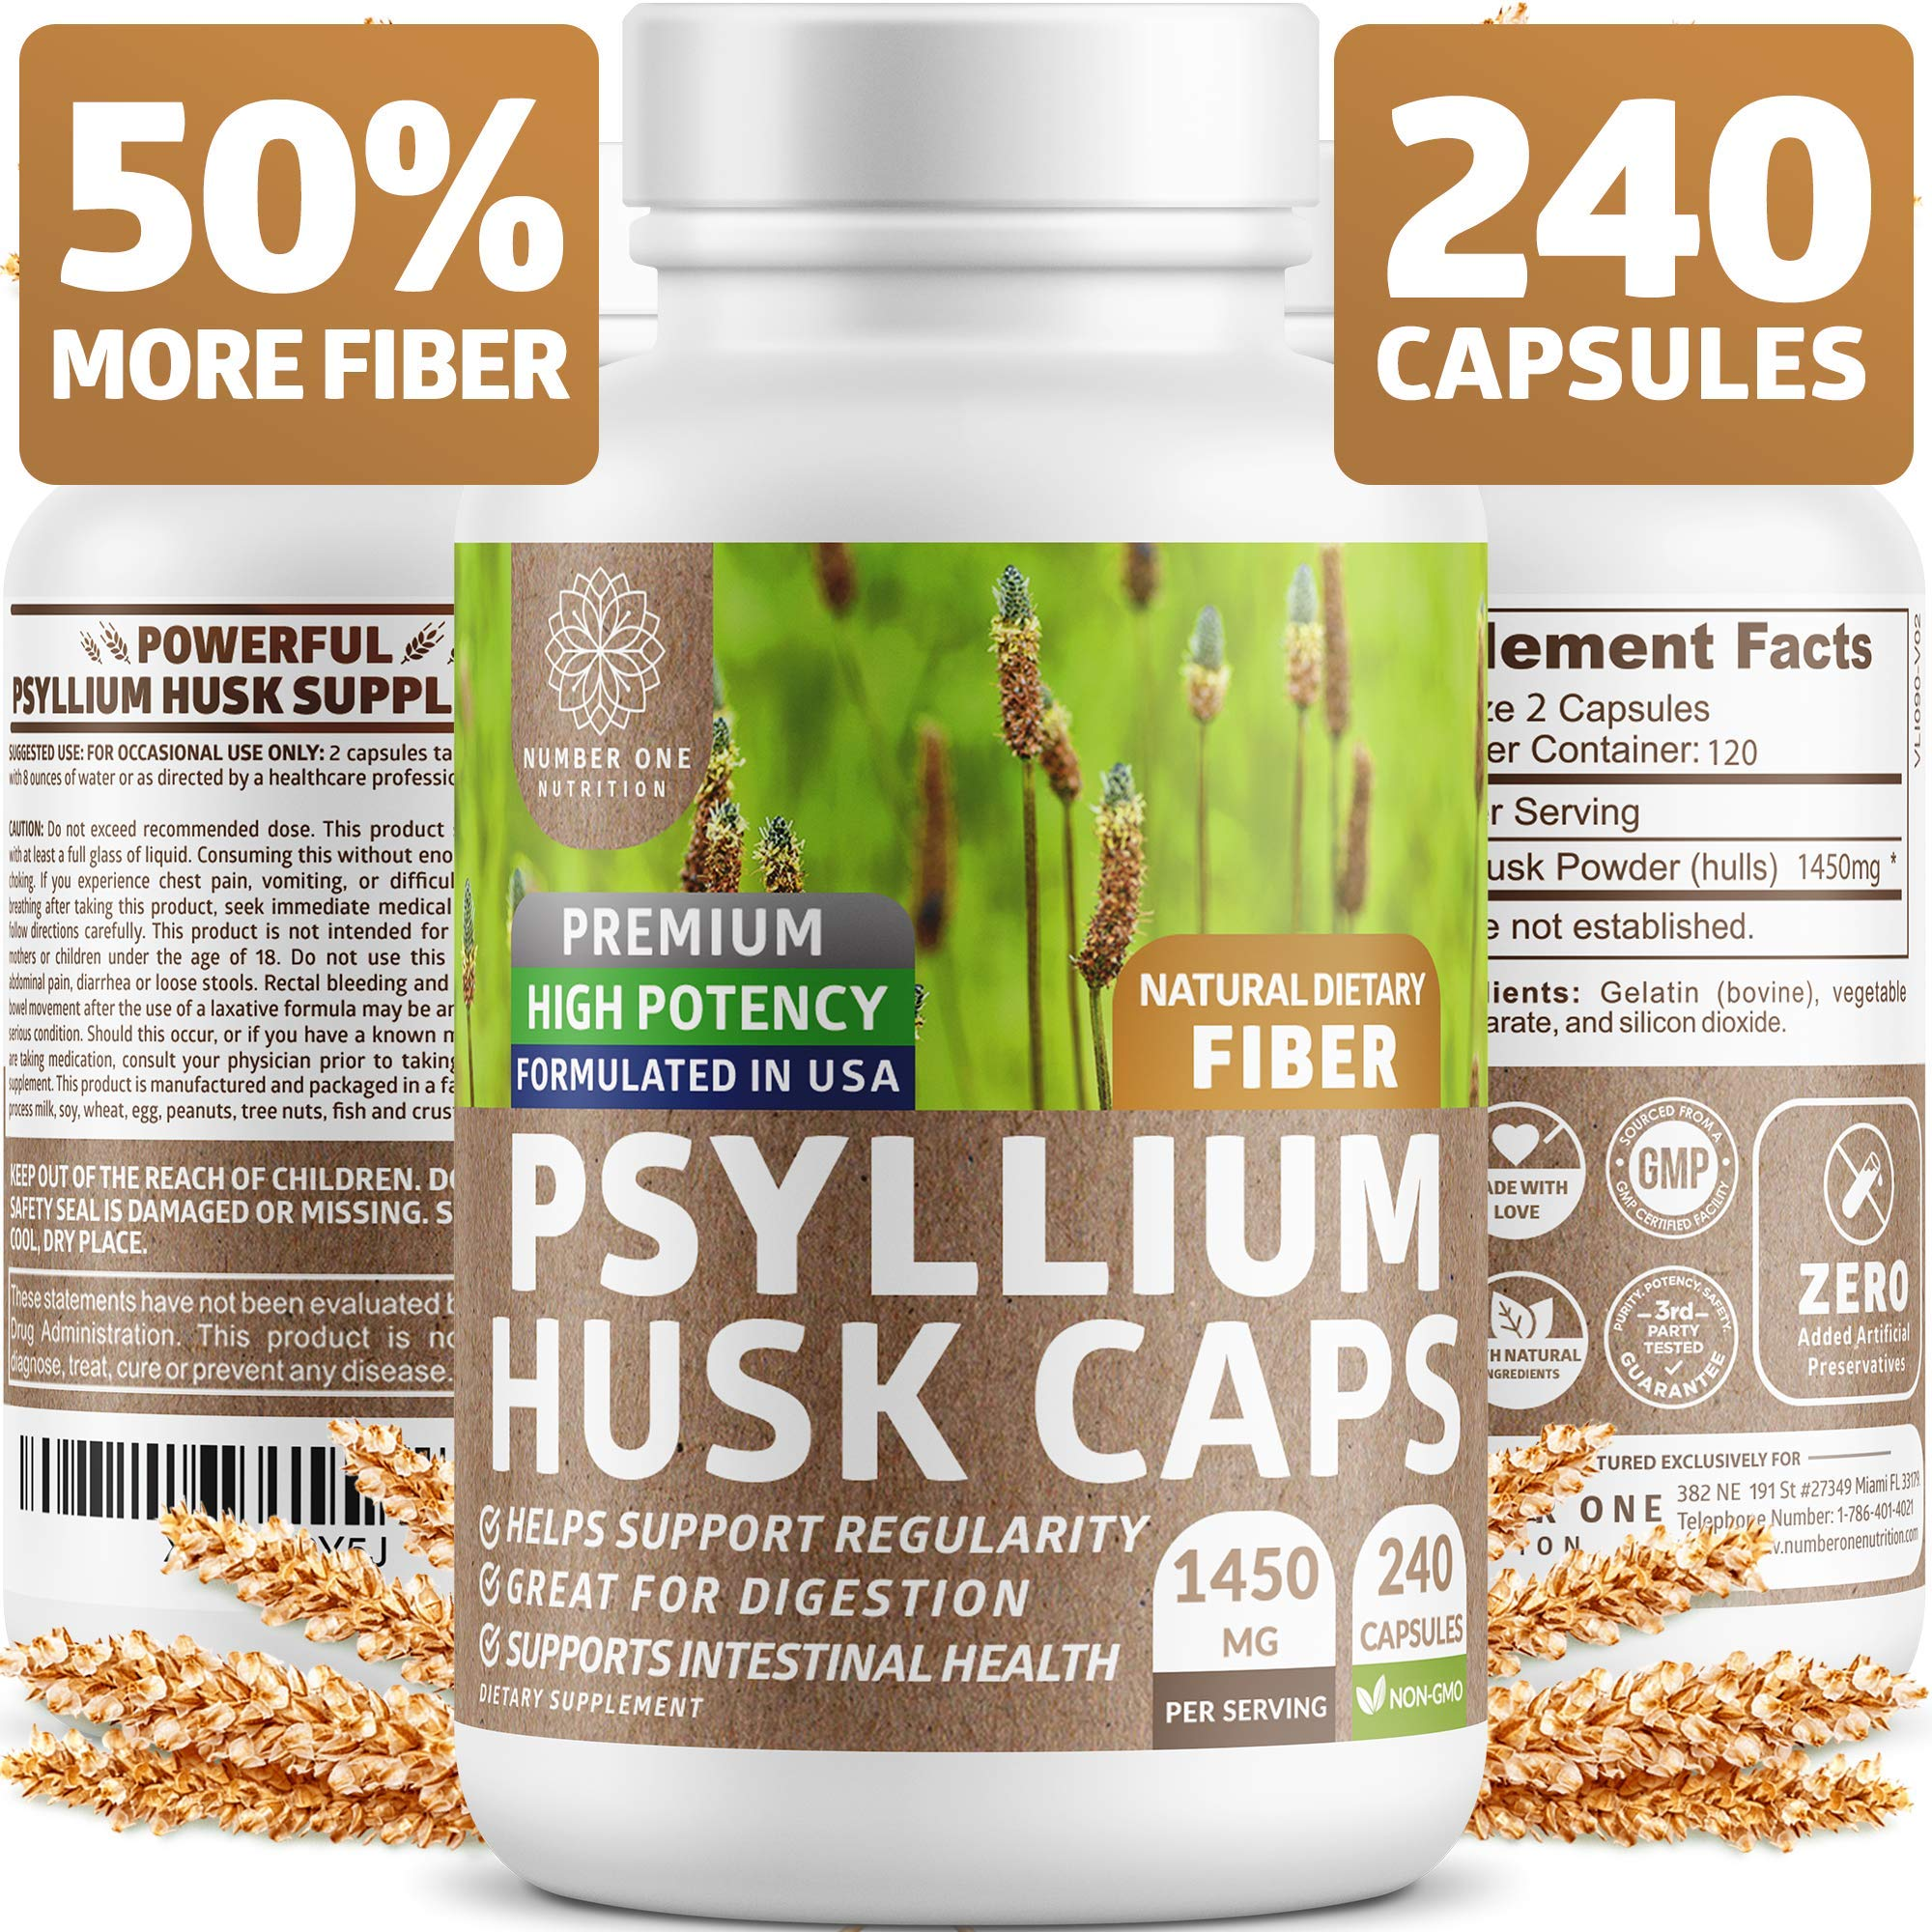 Premium Psyllium Husk Capsules [All Natural & Potent] - Powerful Soluble Fiber Supplement Helps Support Regularity & Digestion, Reduce Constipation, Lower Cholesterol & Support Weight Loss - 240 Caps by Number One Nutrition